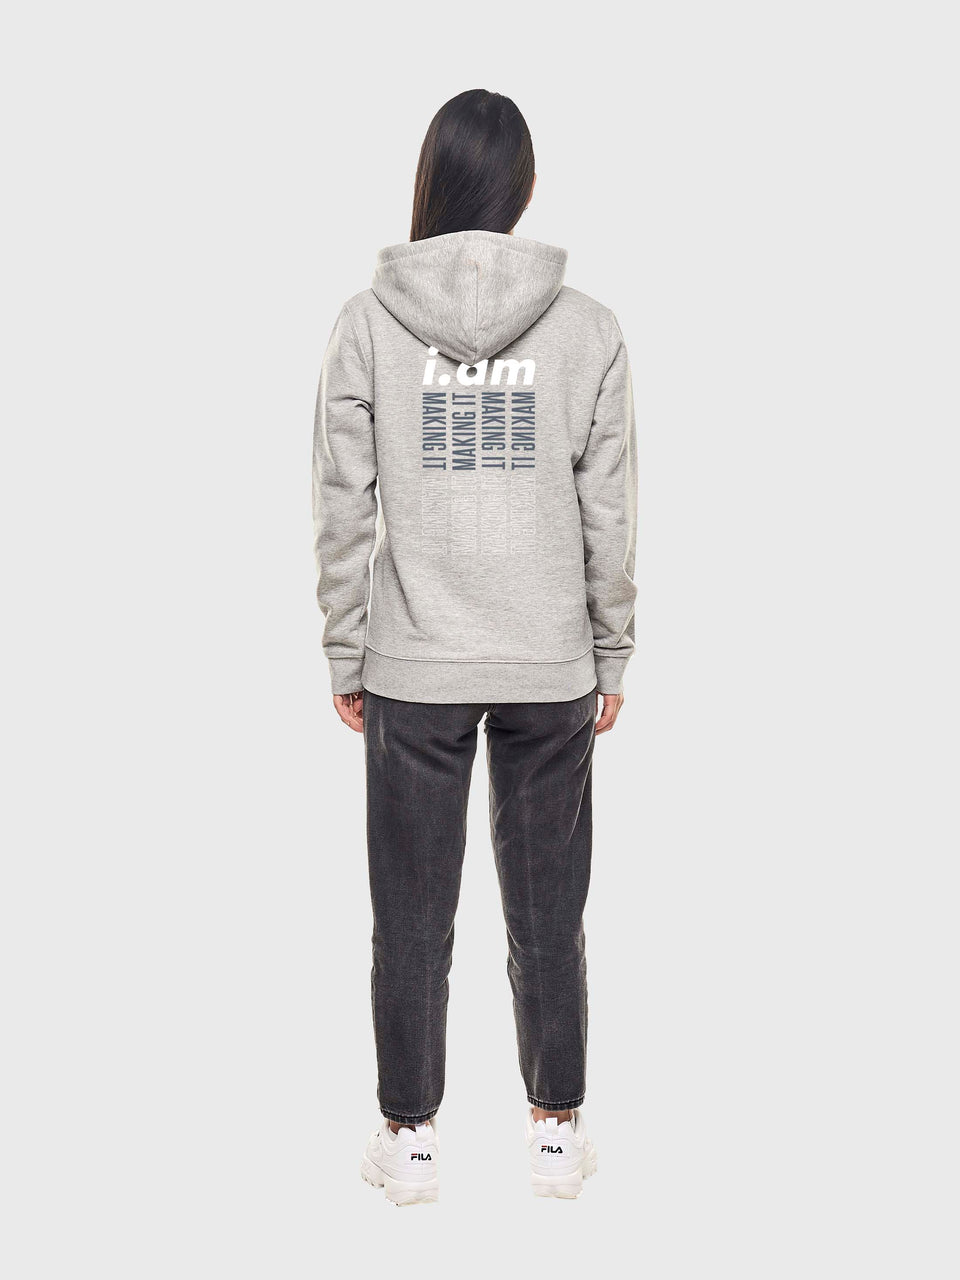 Making it - Grey - Unisex zip up hoodie